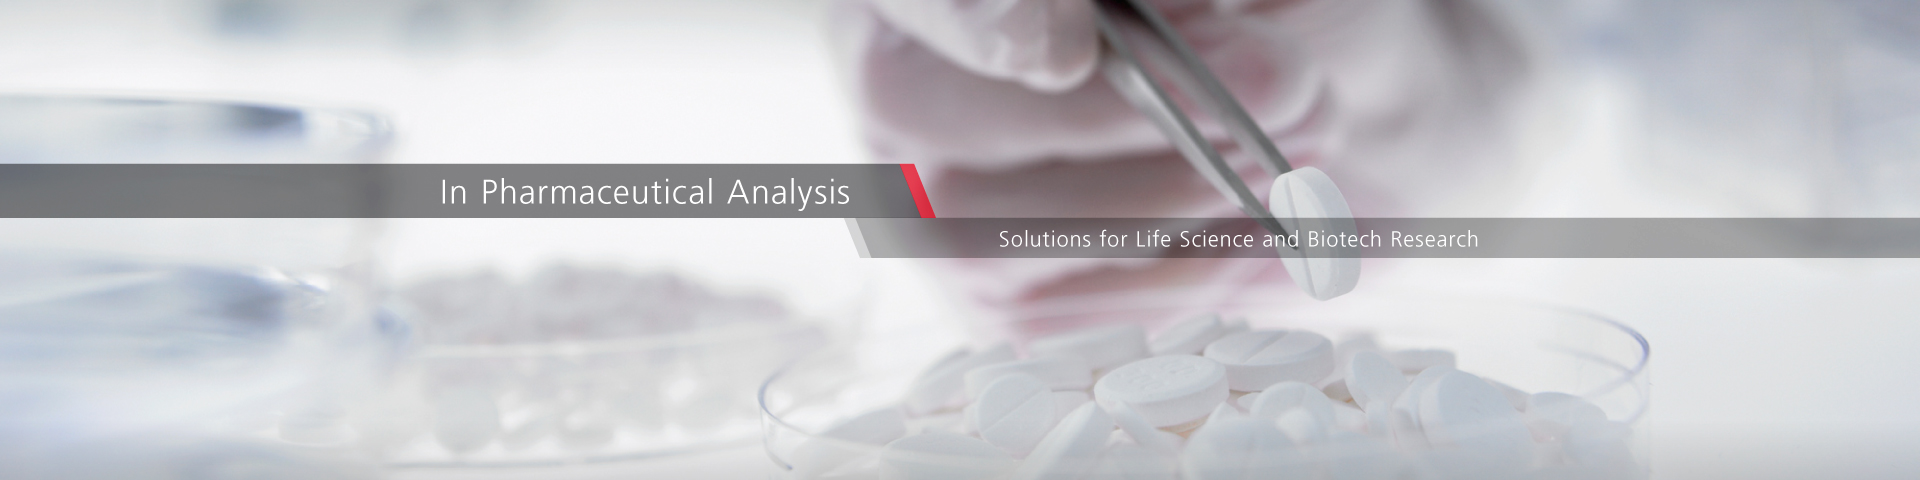 Pharmaceutical, Life Science